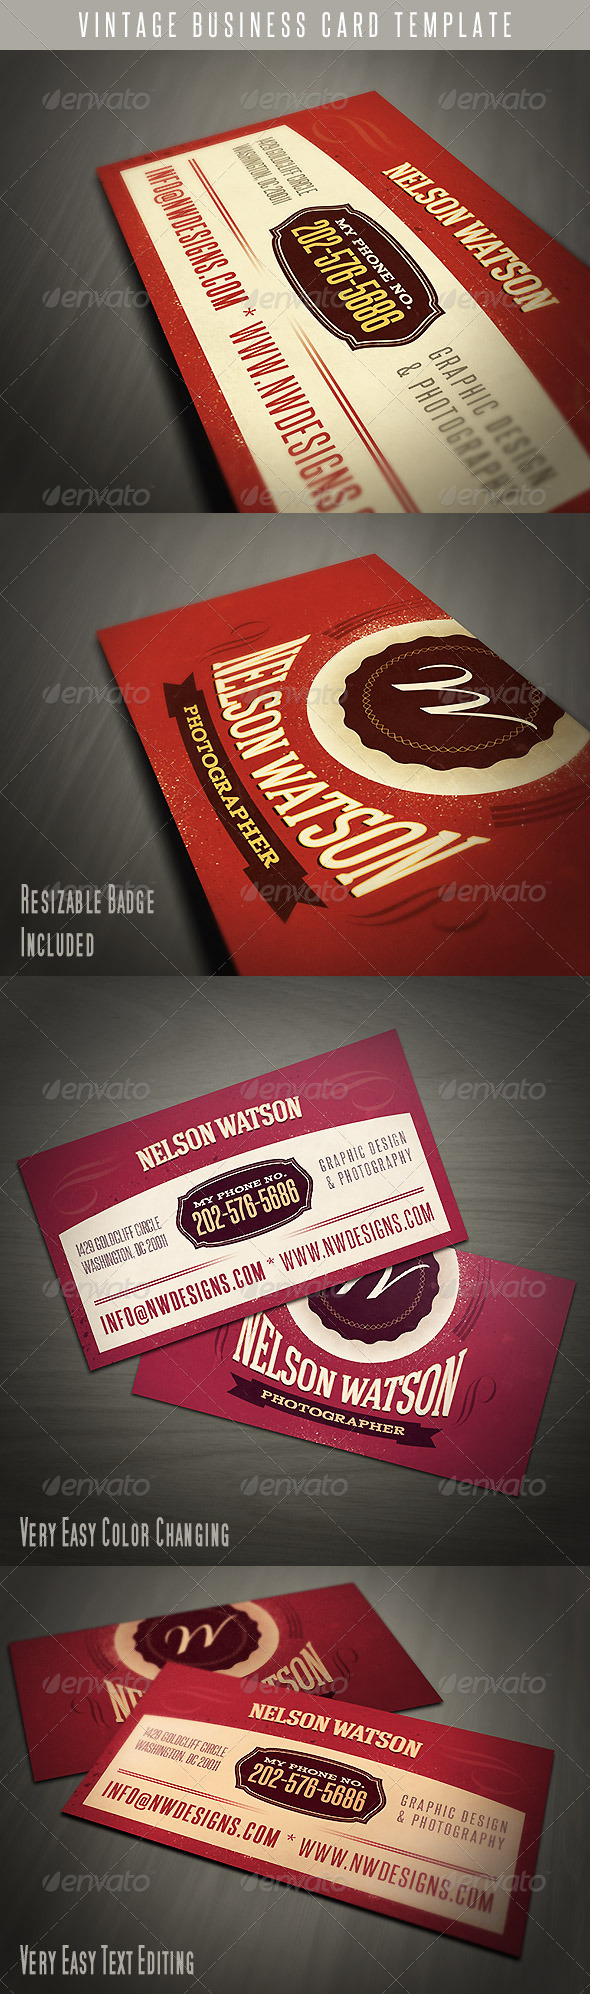 GraphicRiver Vintage Business Card Template 4699577